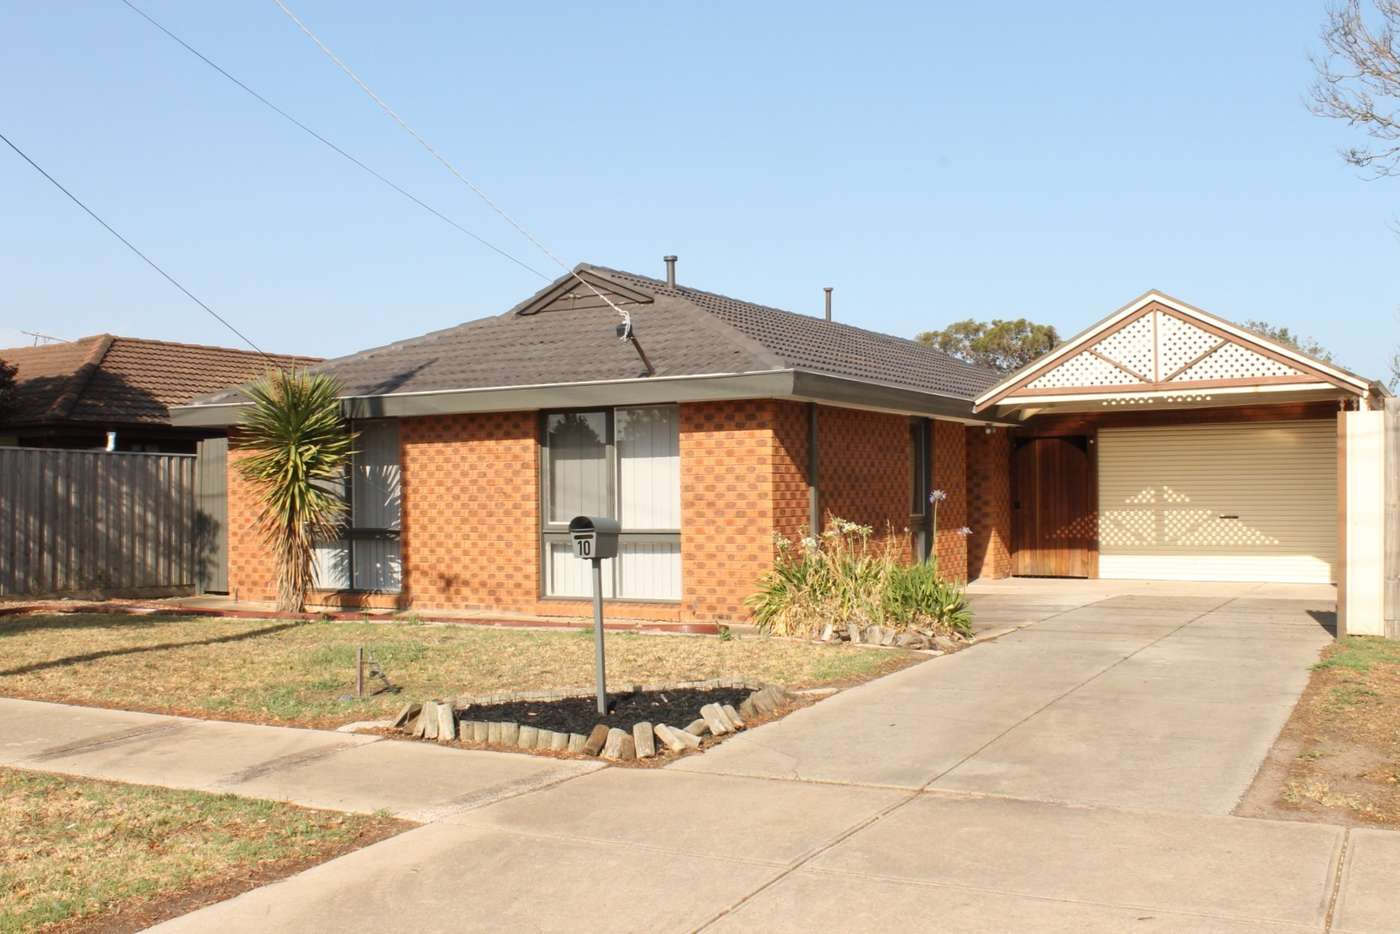 Main view of Homely house listing, 10 Neyland Court, Altona Meadows, VIC 3028